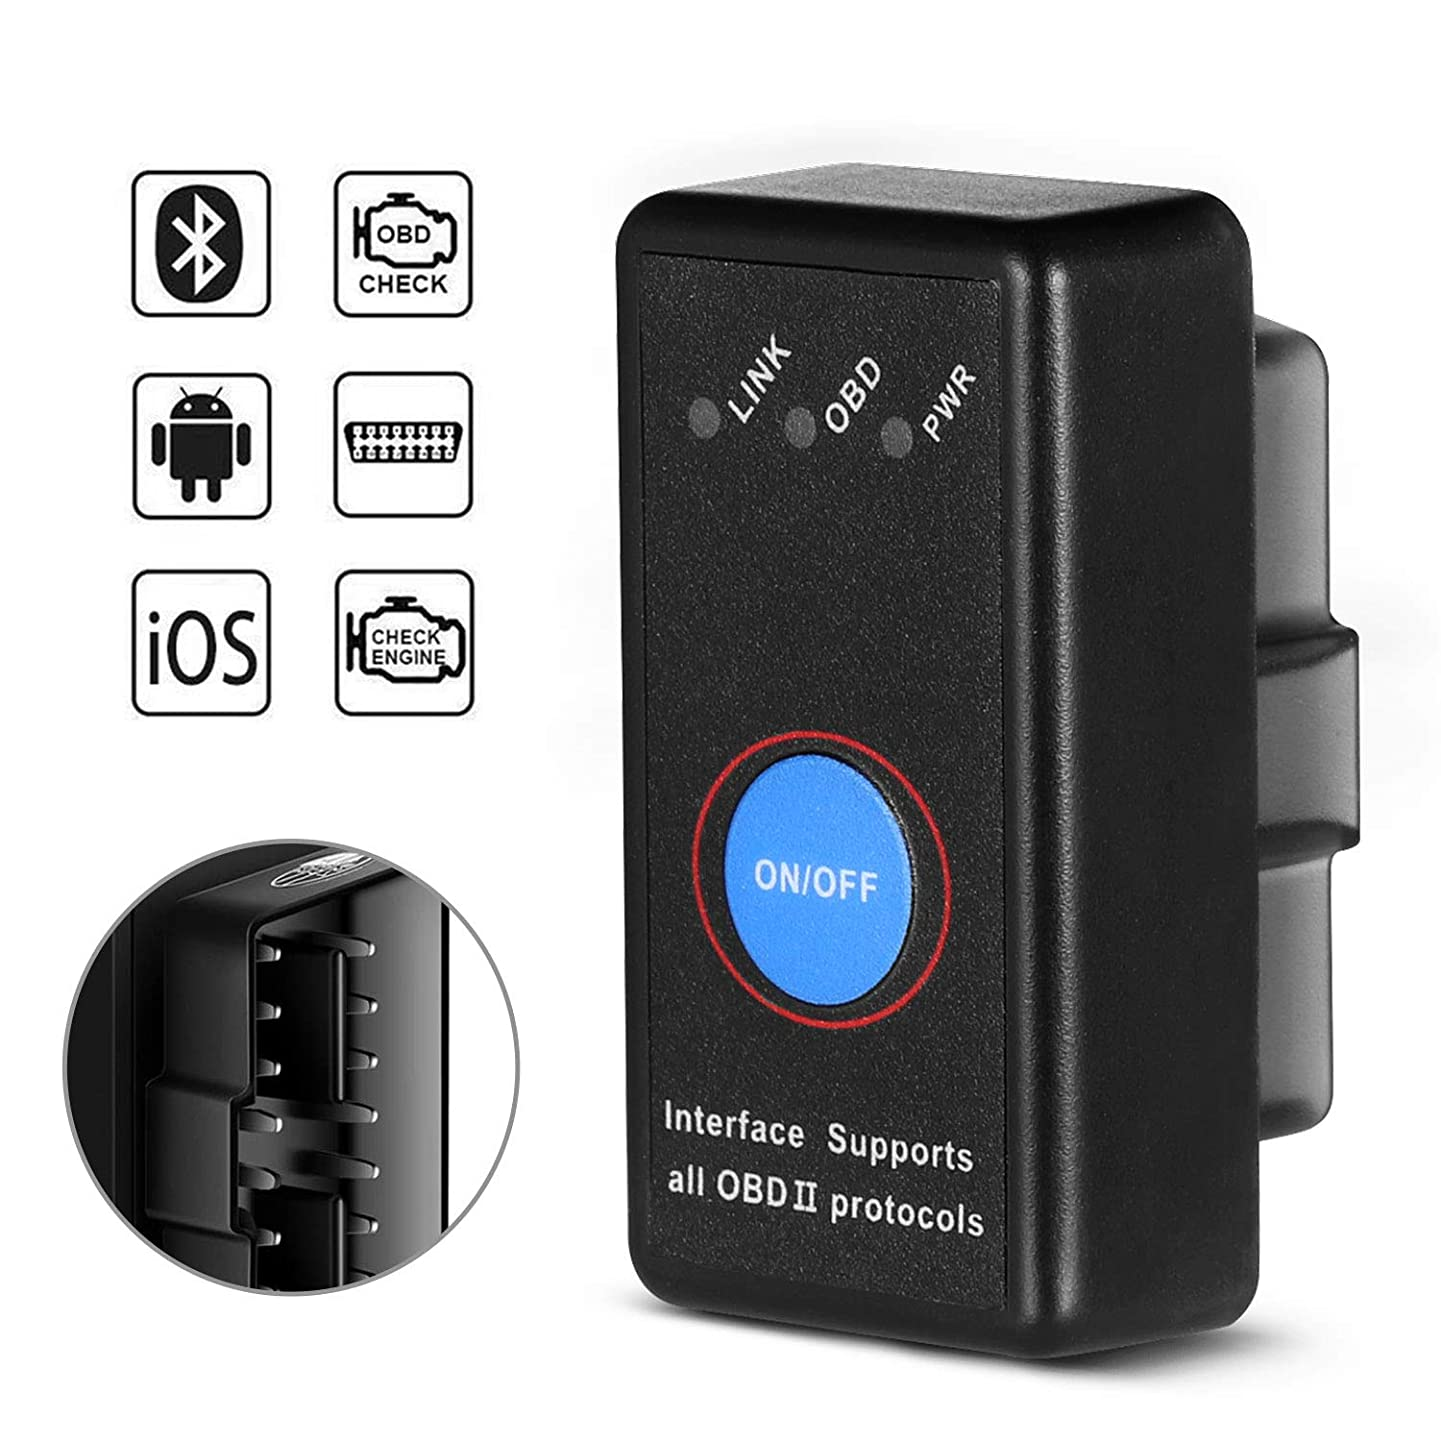 SAVFY Bluetooth OBD2 Scanner Equal to ELM327 OBDII Adapter Diagnostic-Tool Car Engine Code Reader Tester for iOS & Android